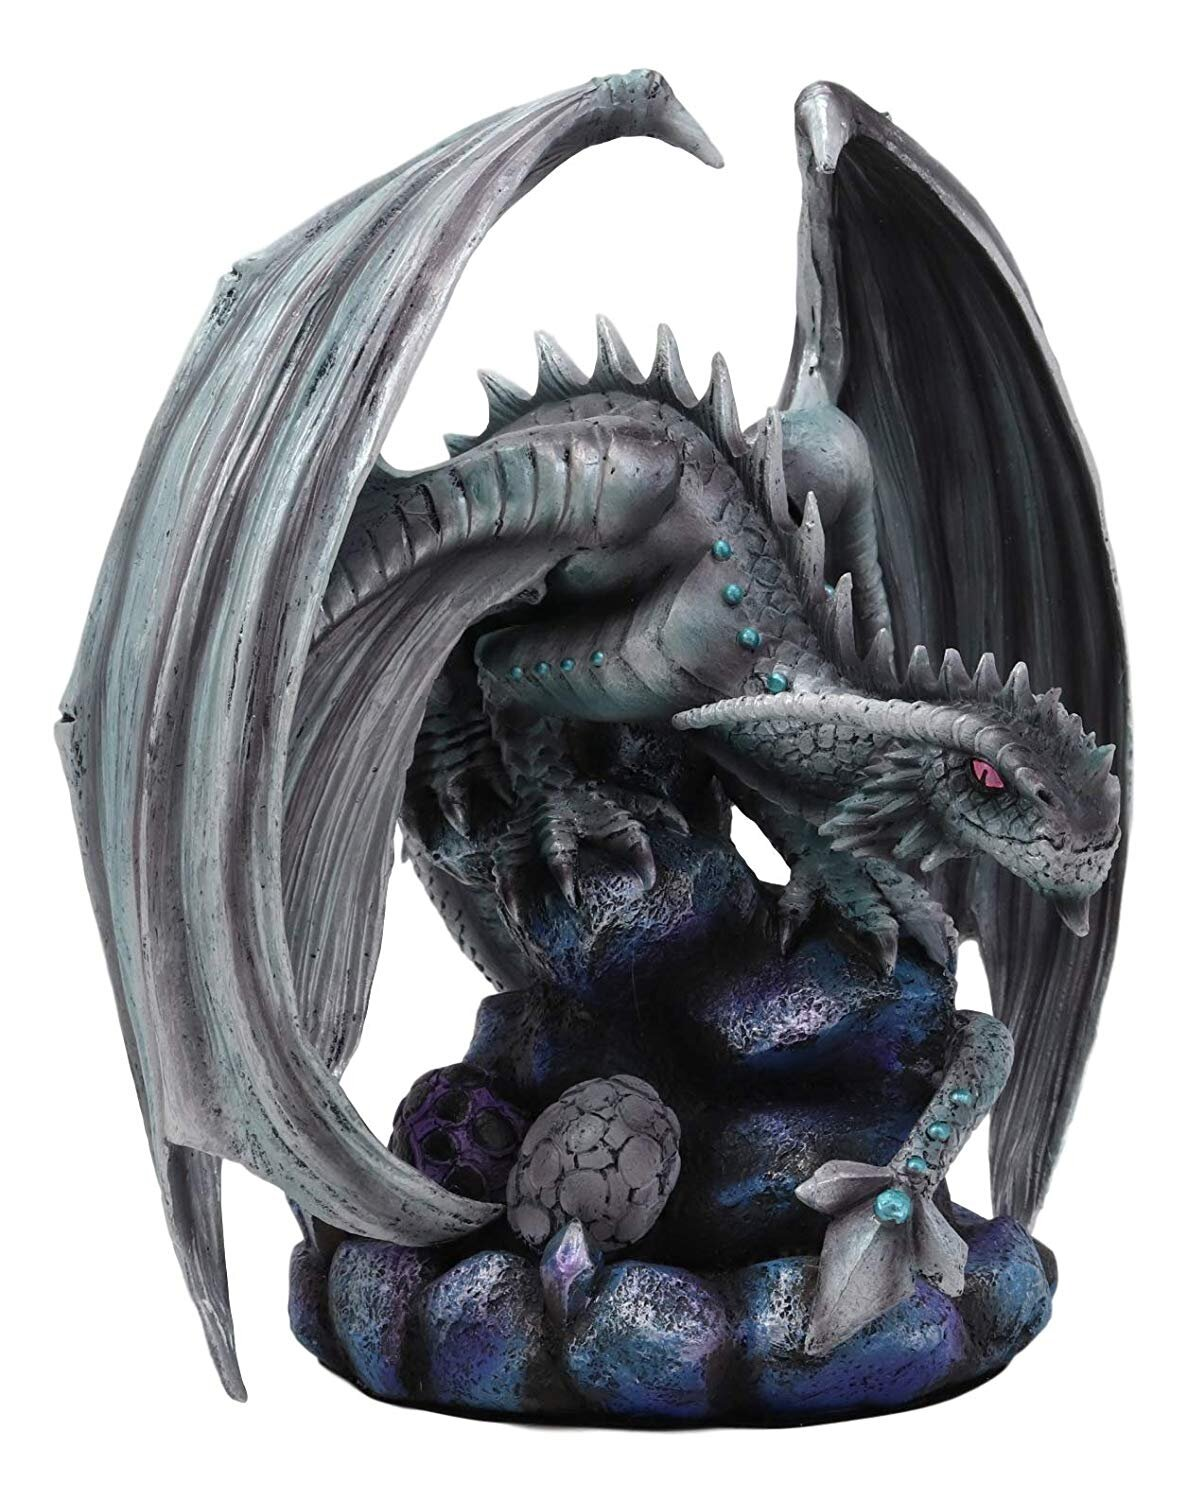 Dragon World Menagerie Decorative Objects You Ll Love In 2021 Wayfair